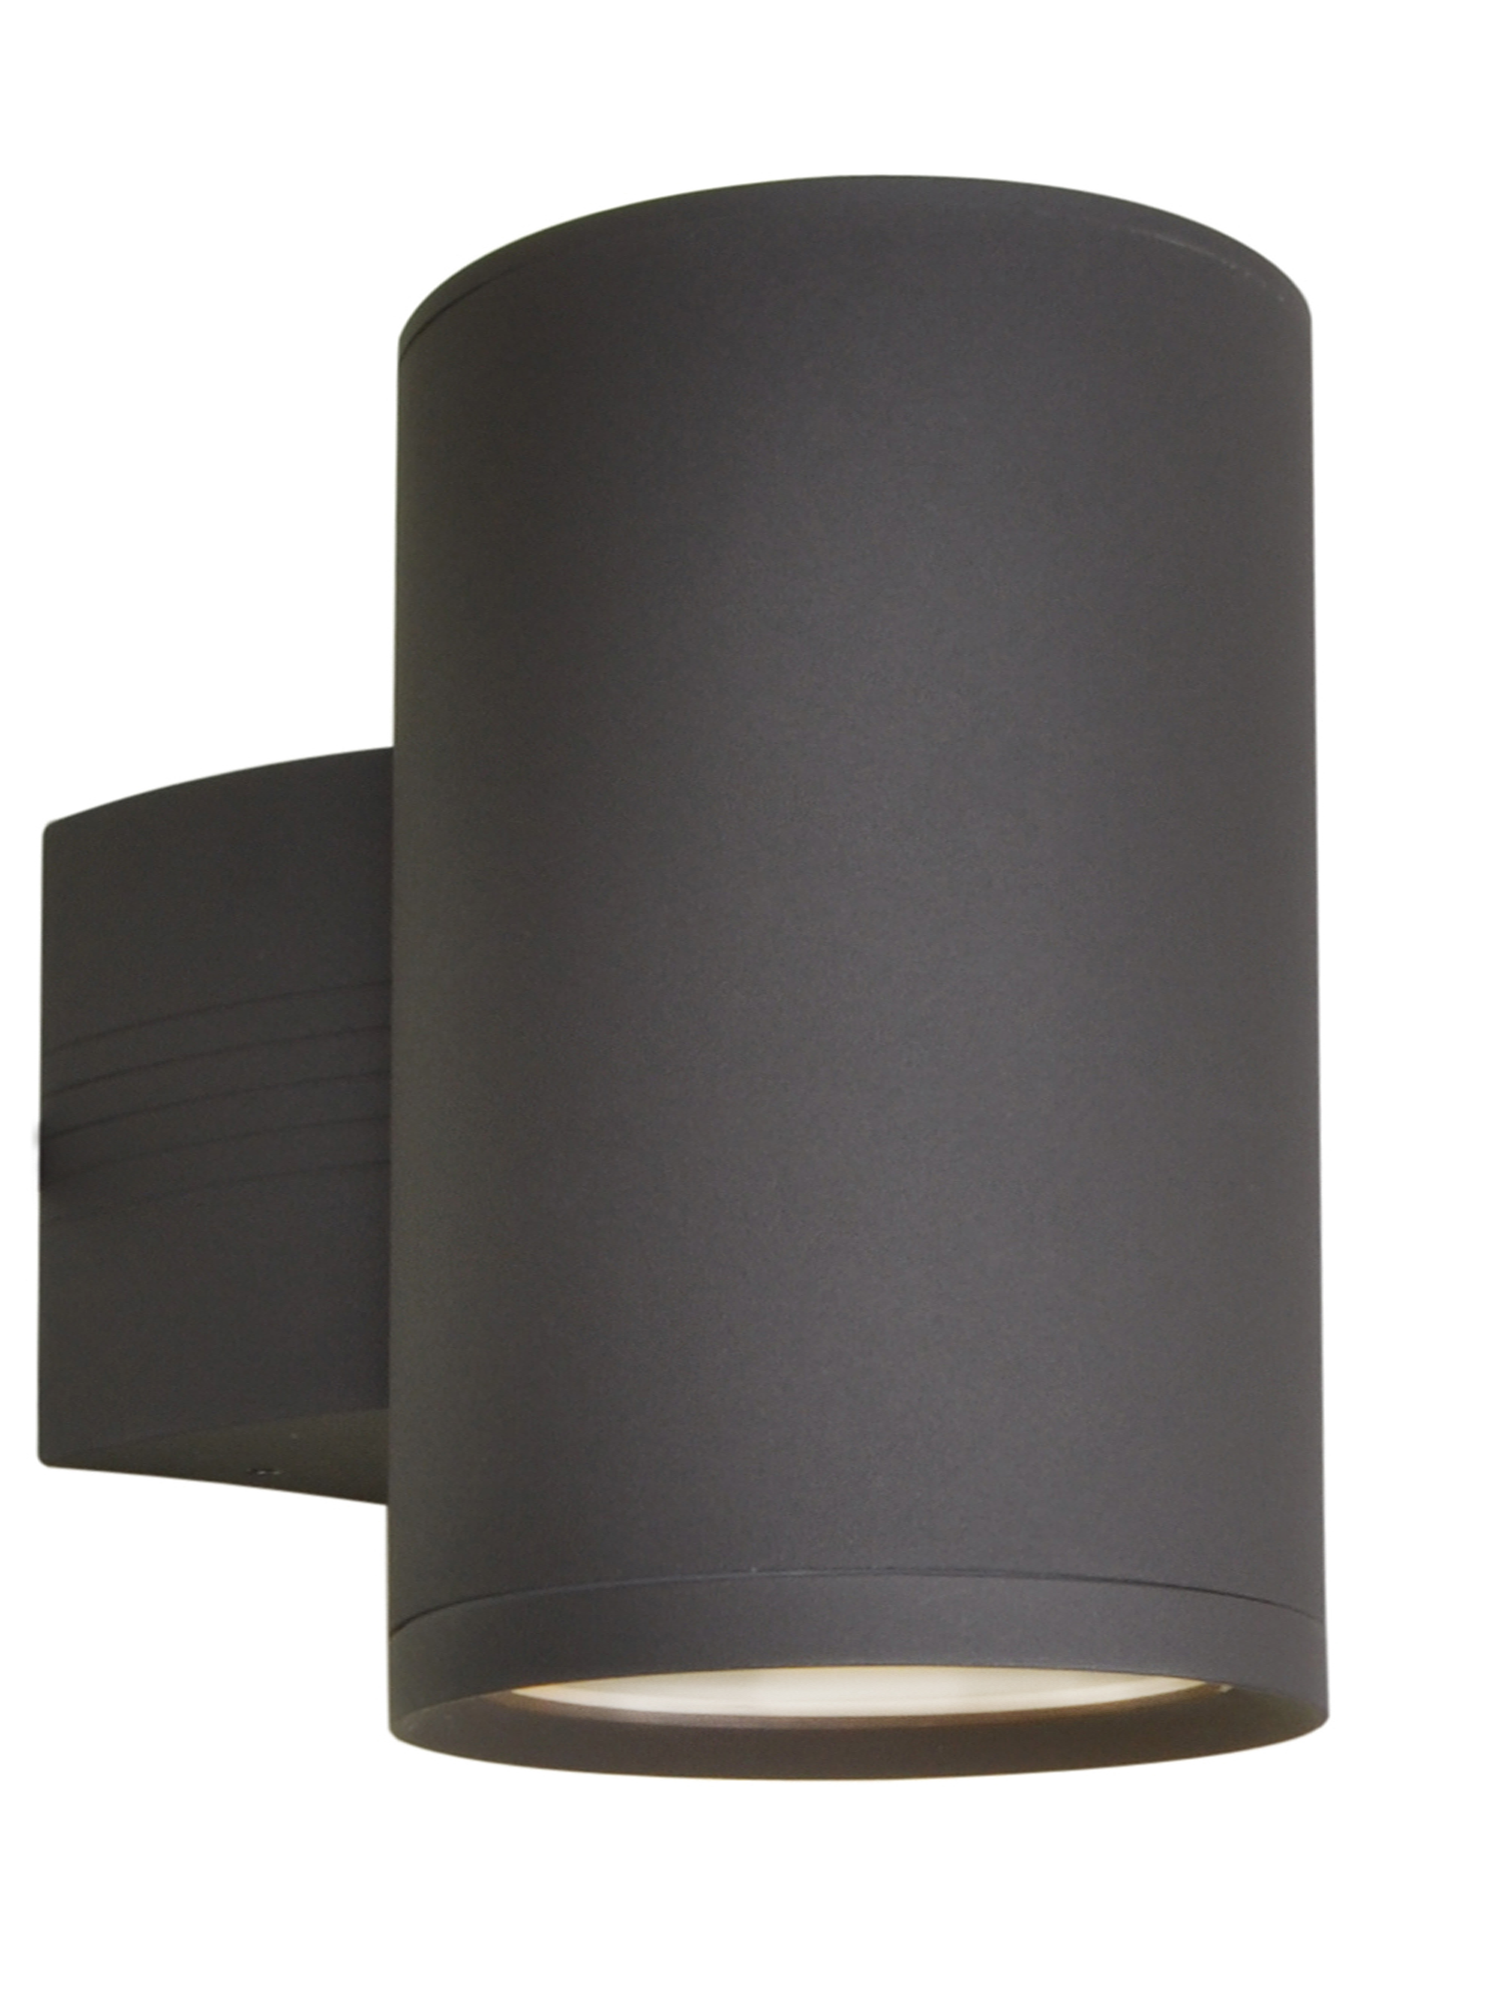 Lightray Plain Outdoor Wall Sconce By Maxim Lighting 6101abz